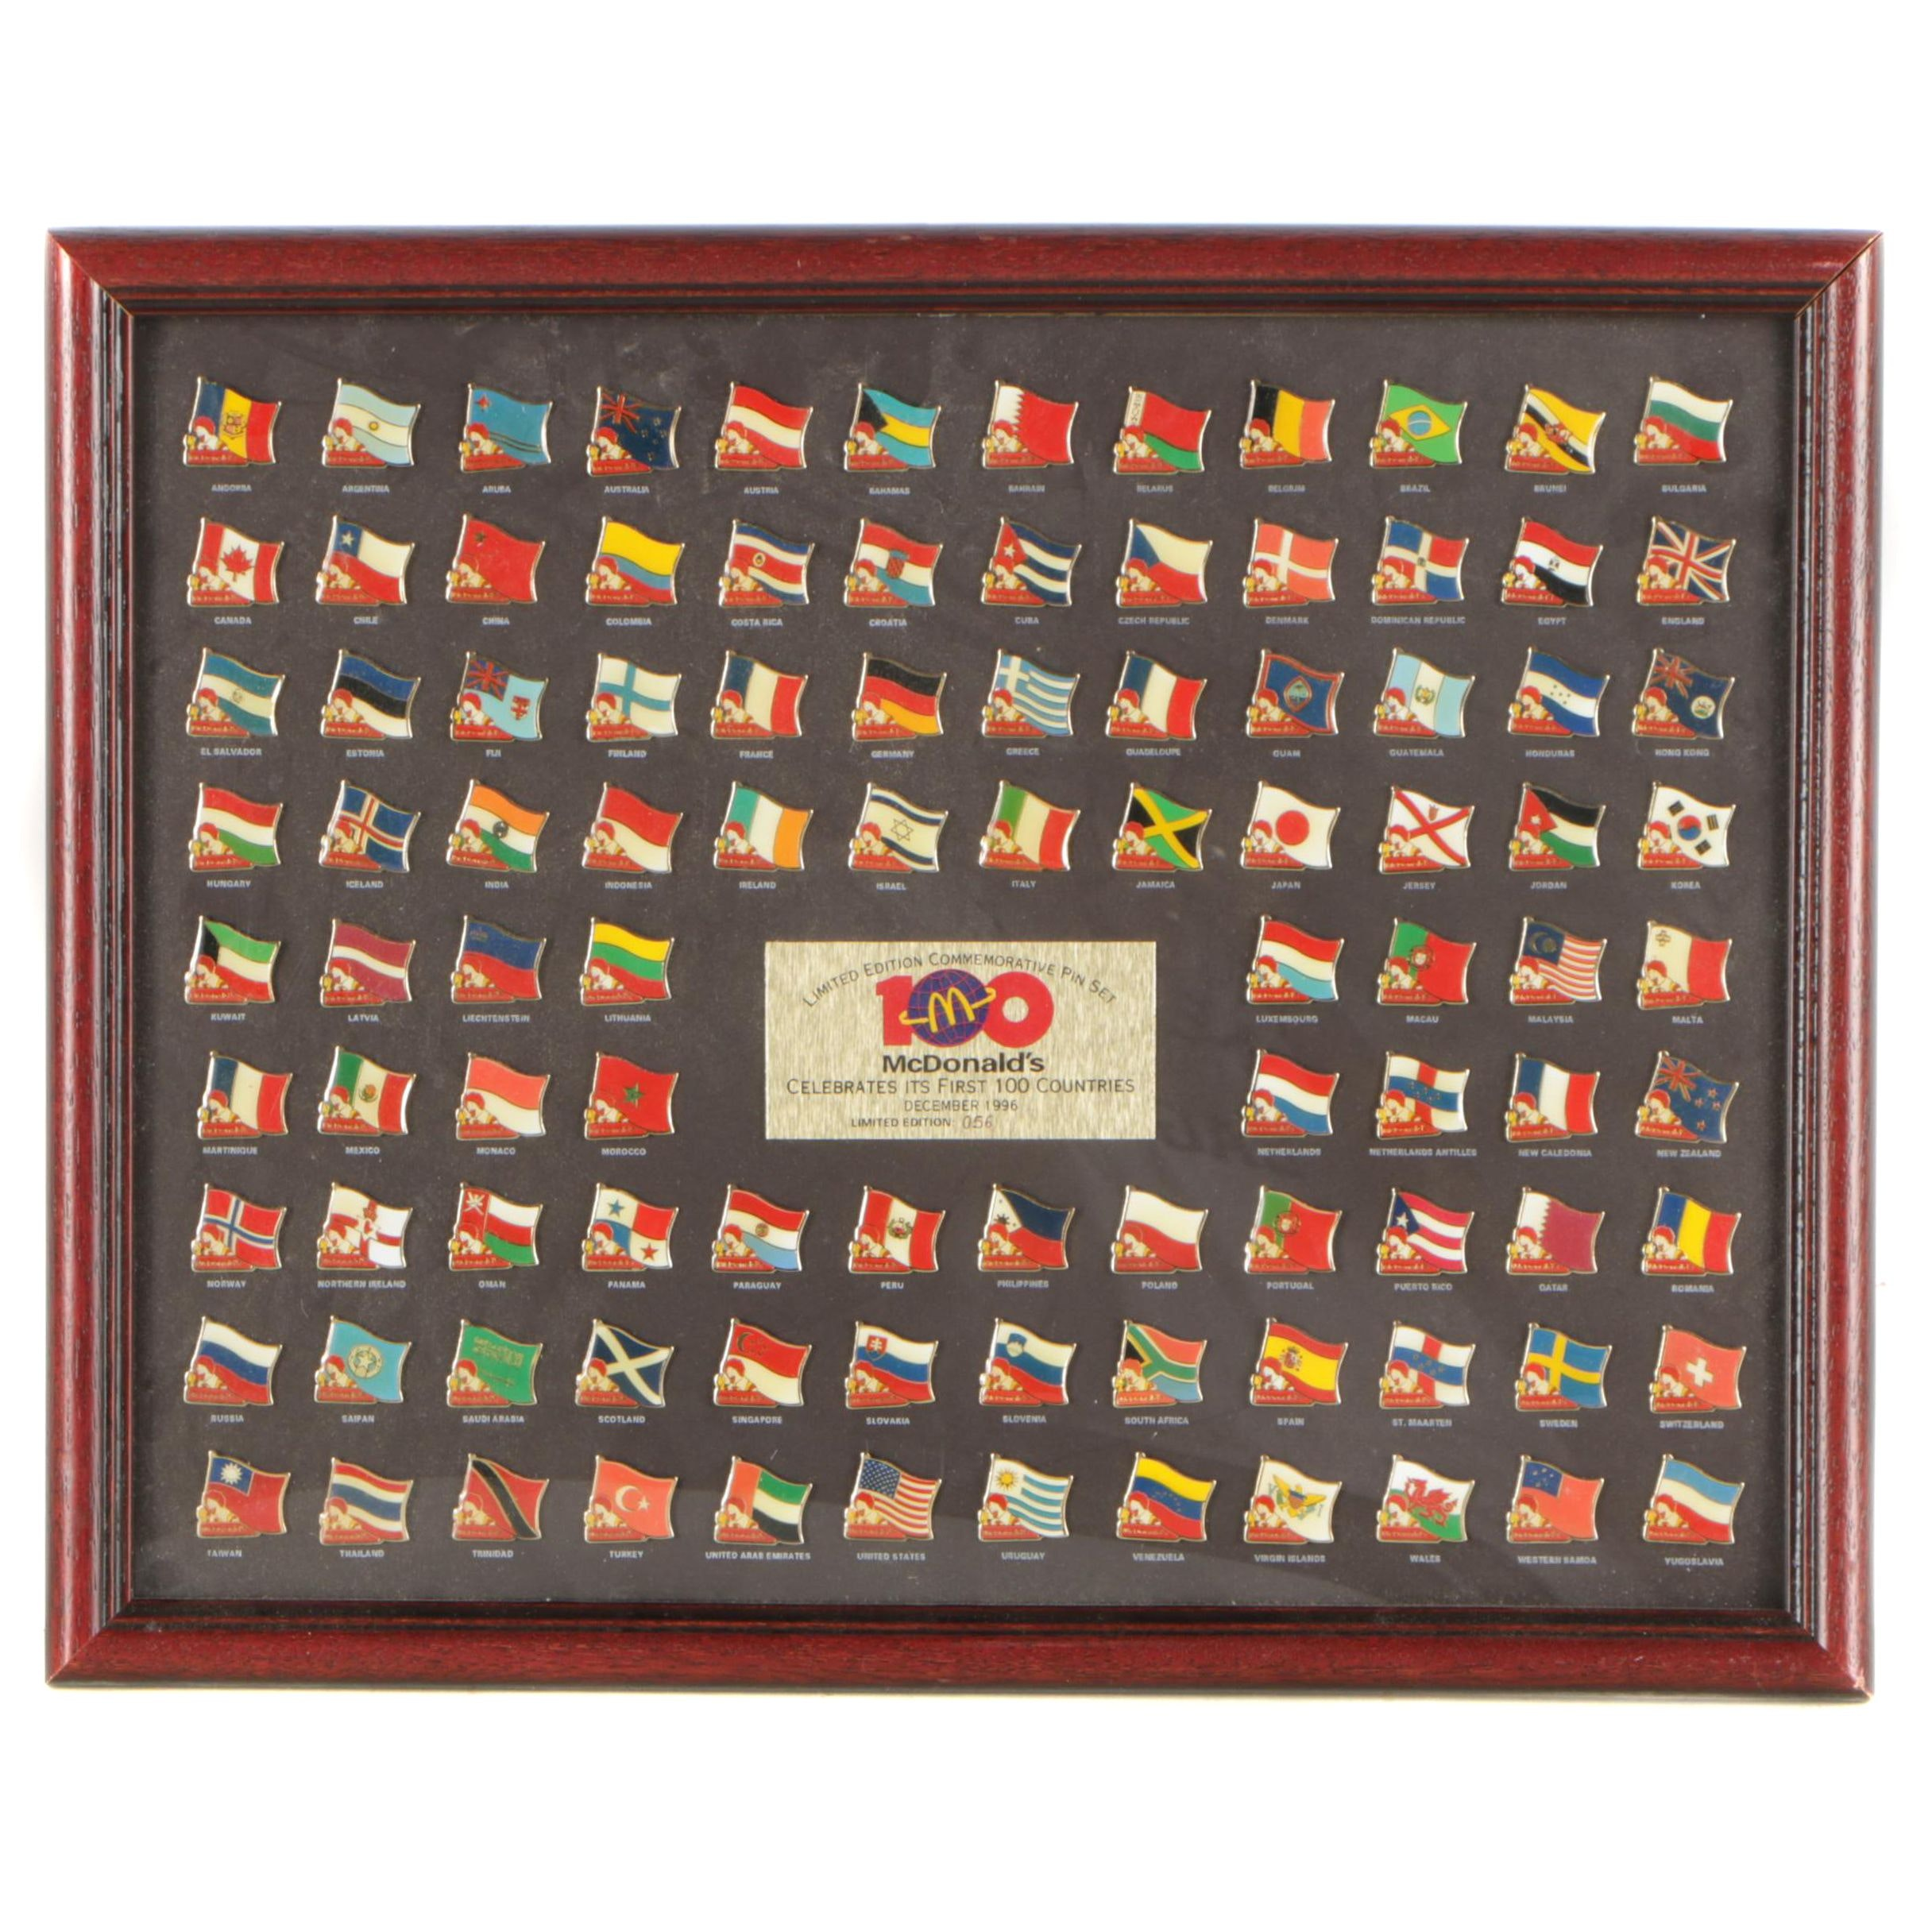 Framed Limited Edition 1996 McDonald's First 100 Countries Commemorative Pin Set